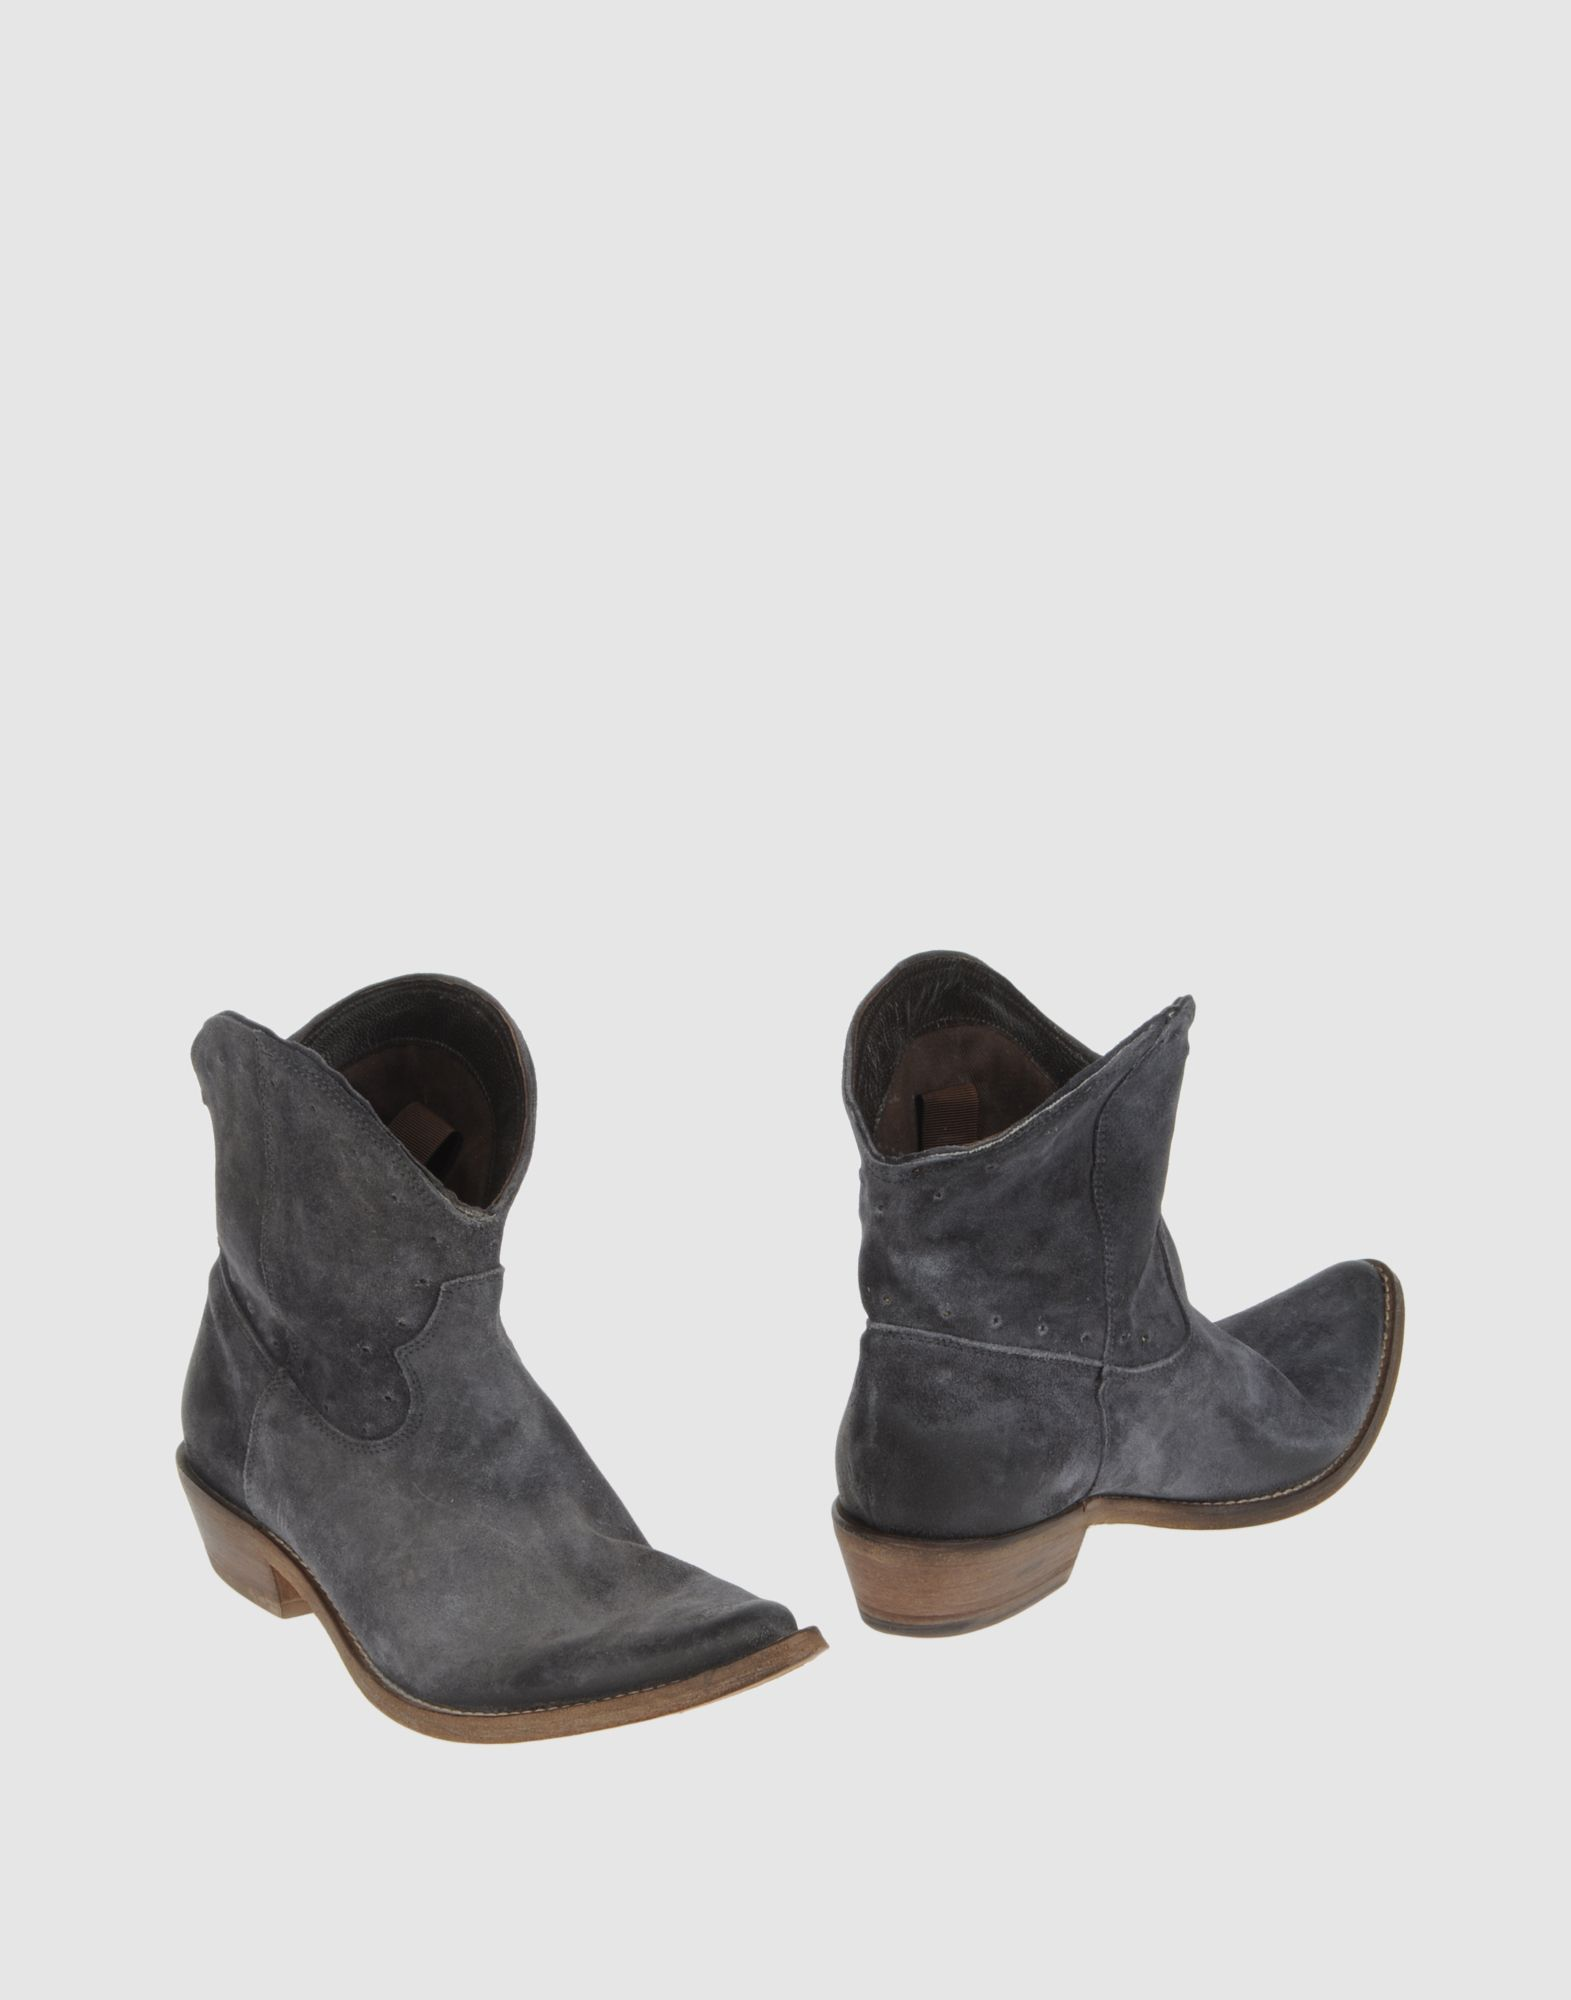 Sale Enjoy FOOTWEAR - Boots Strategia Clearance For Cheap f7H8I0C